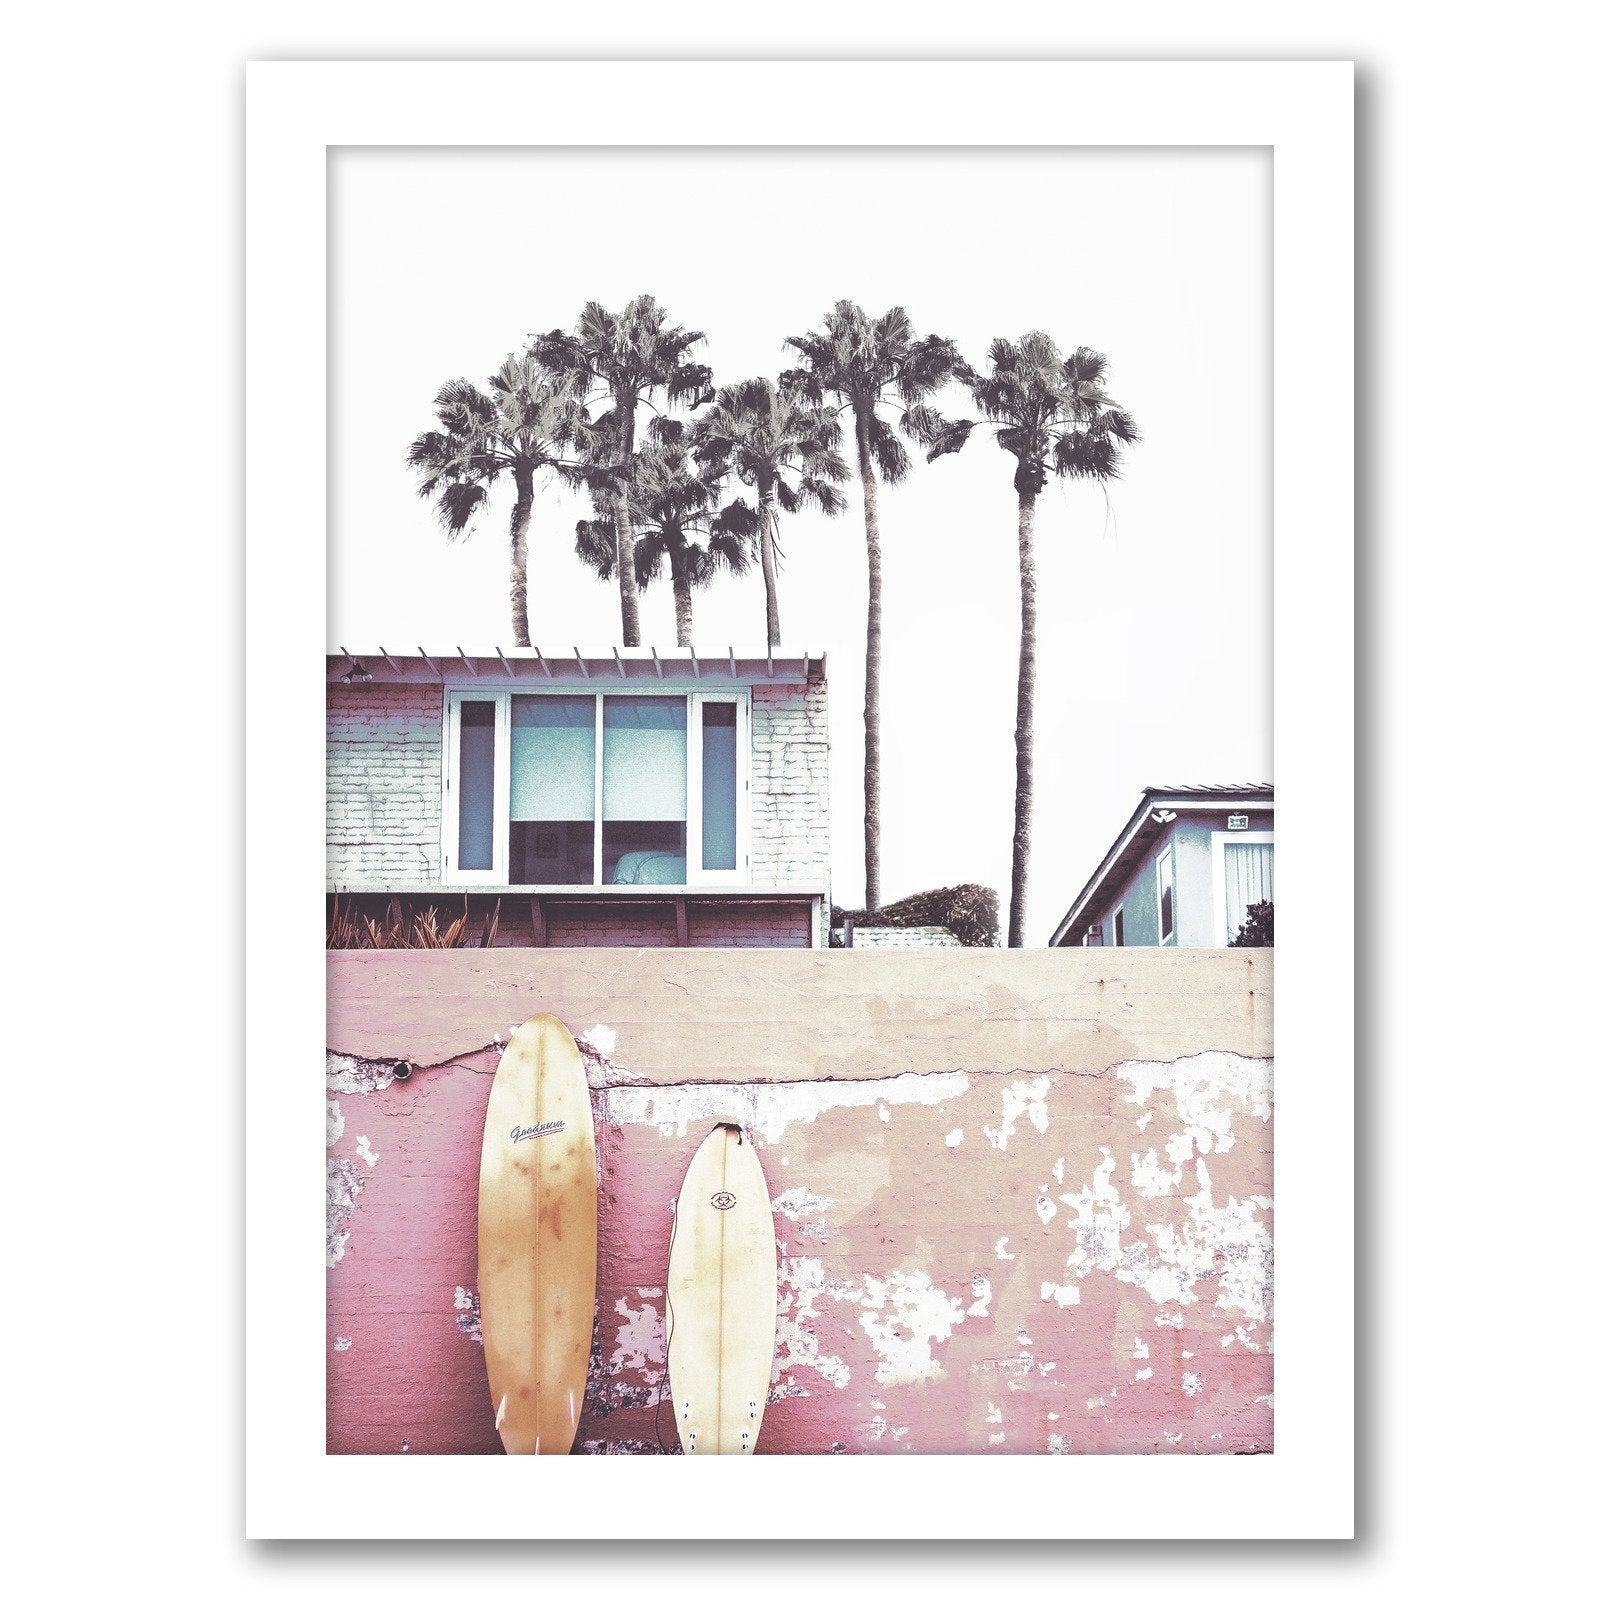 California Surf by Tanya Shumkina - White Framed Print - Wall Art - Americanflat